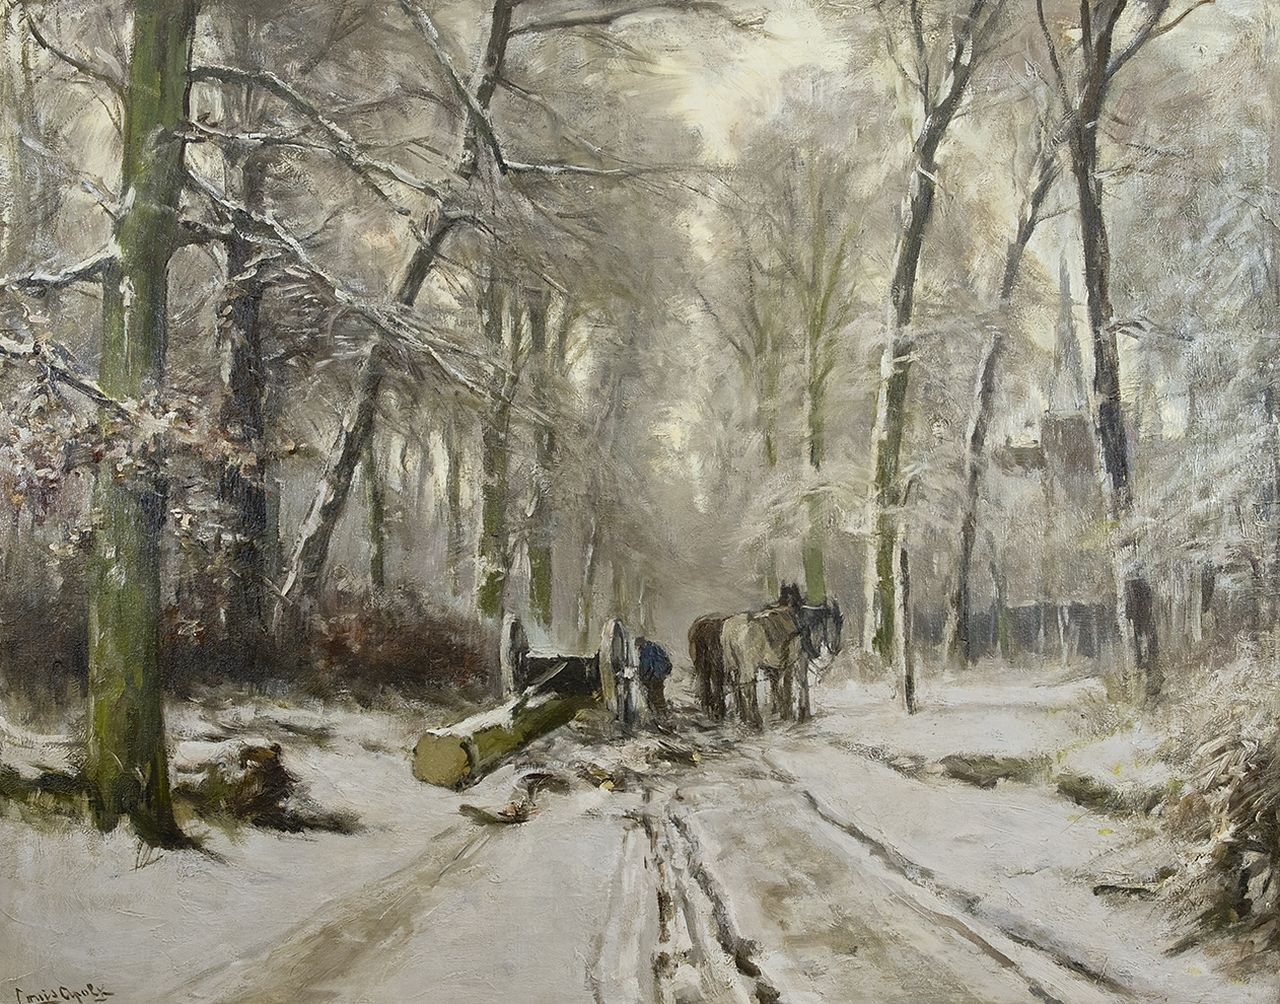 Apol L.F.H.  | Lodewijk Franciscus Hendrik 'Louis' Apol, A 'mallejan' in a snowy forest, oil on canvas 73.4 x 92.8 cm, signed l.l.